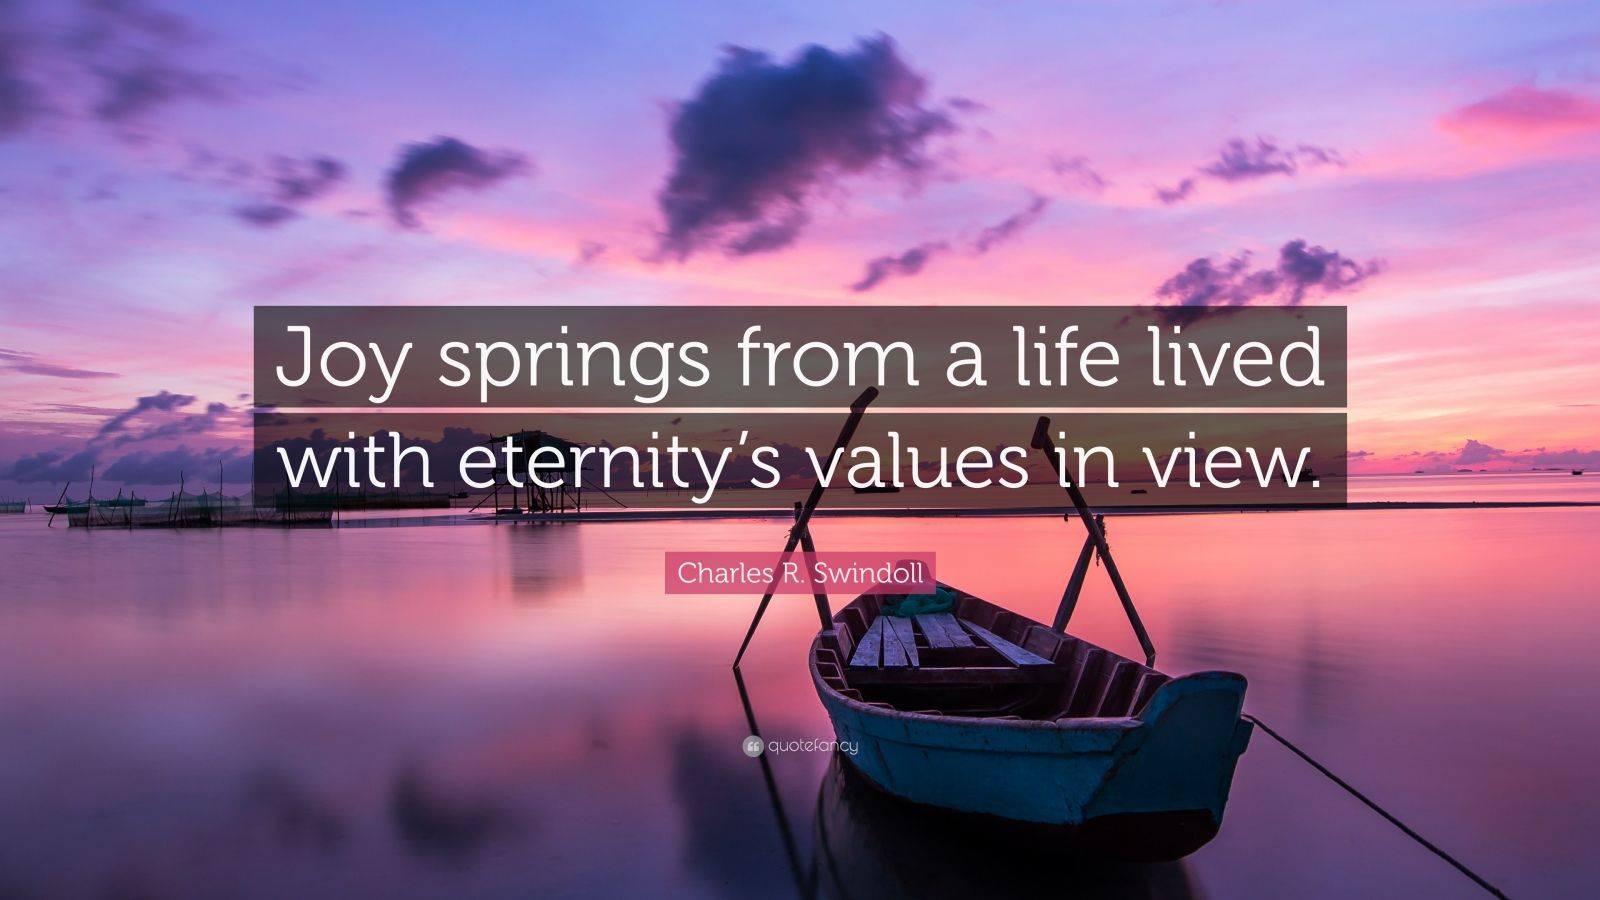 """Charles R. Swindoll Quote: """"Joy springs from a life lived with eternity's values in view."""""""